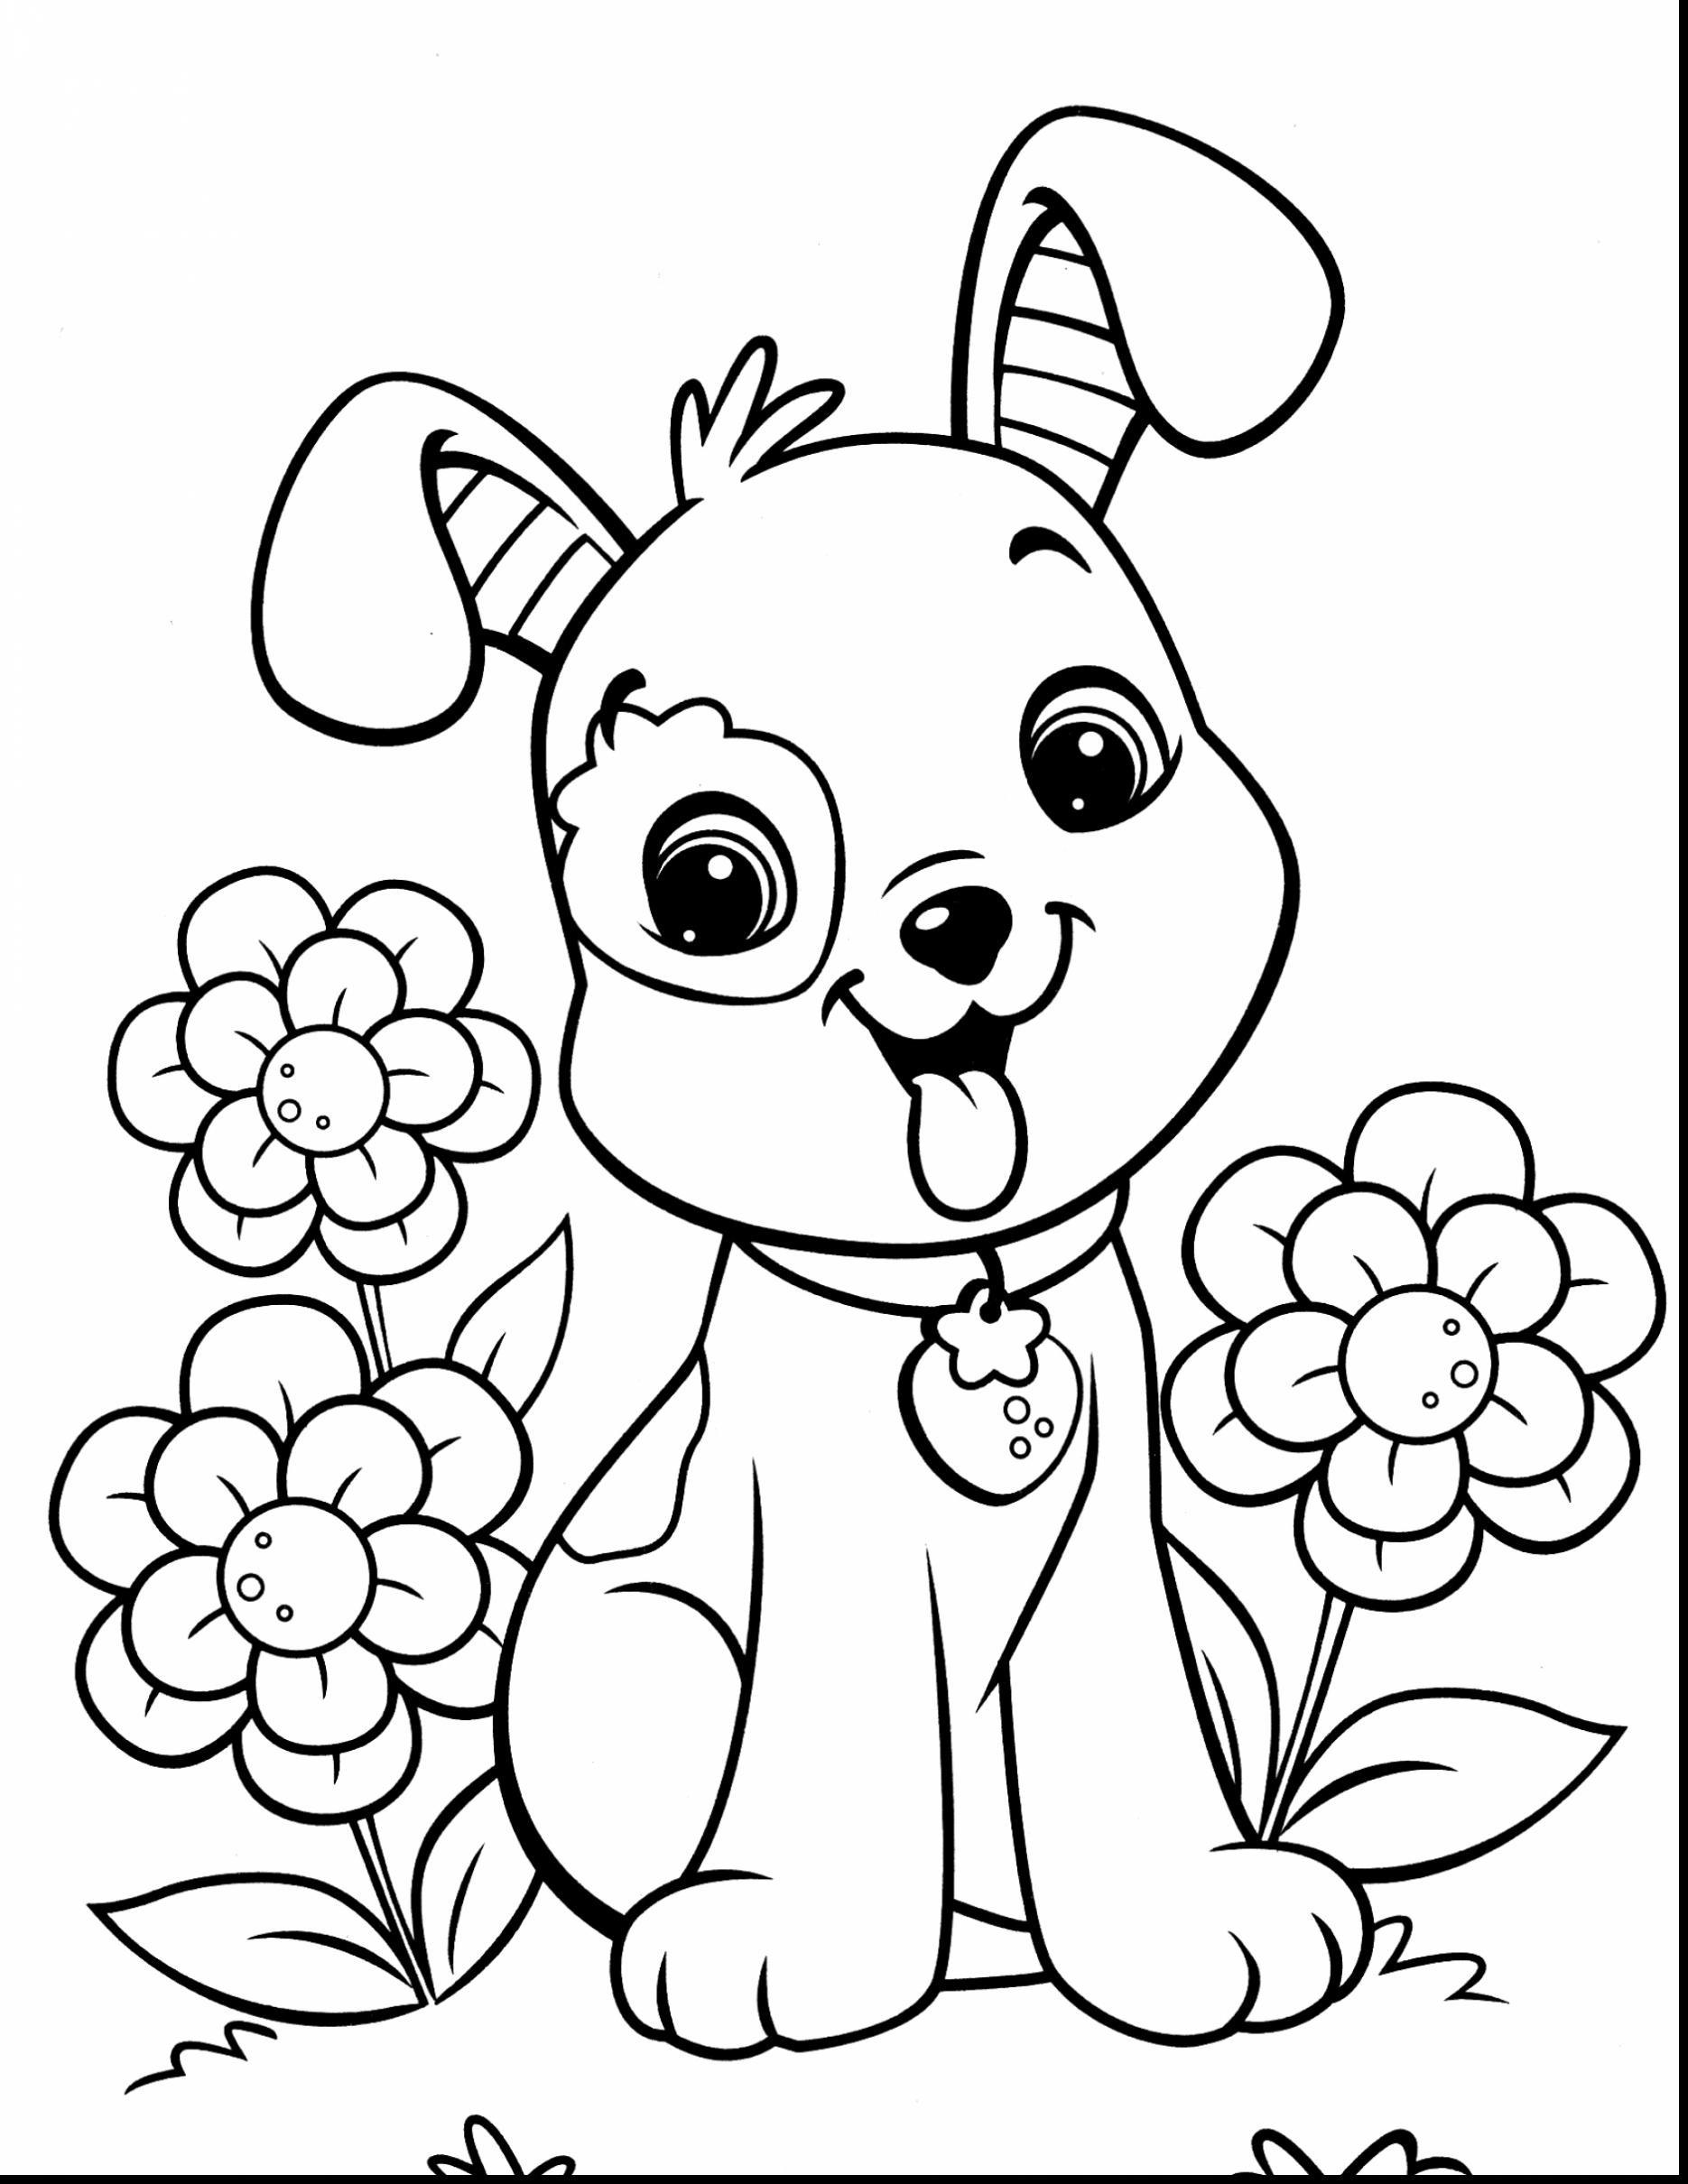 1870x2420 Free Printable Dog And Cat Coloring Pages Free Draw To Color